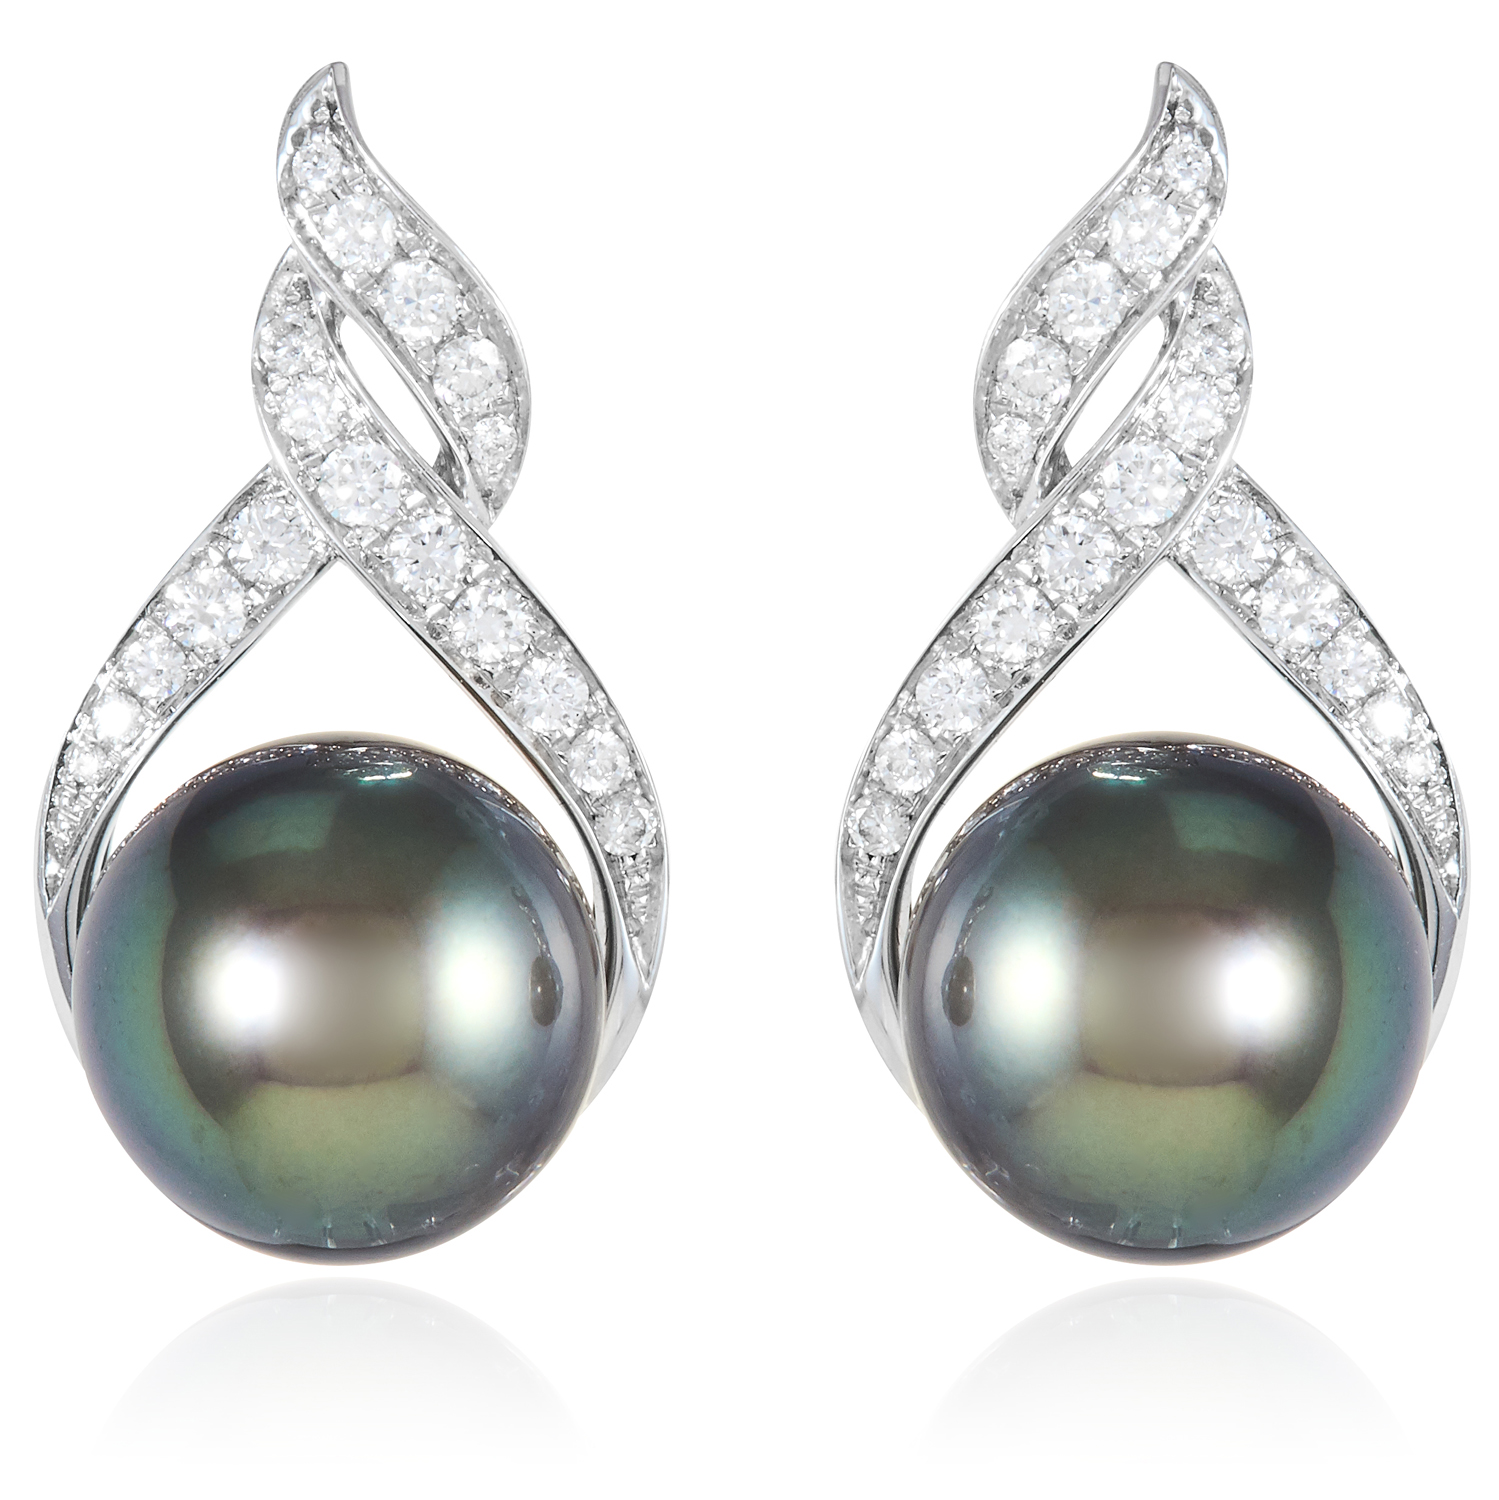 A PAIR OF PEARL AND DIAMOND EARRINGS, SCHOEFFEL in 18ct white gold, each set with a 12.0mm grey